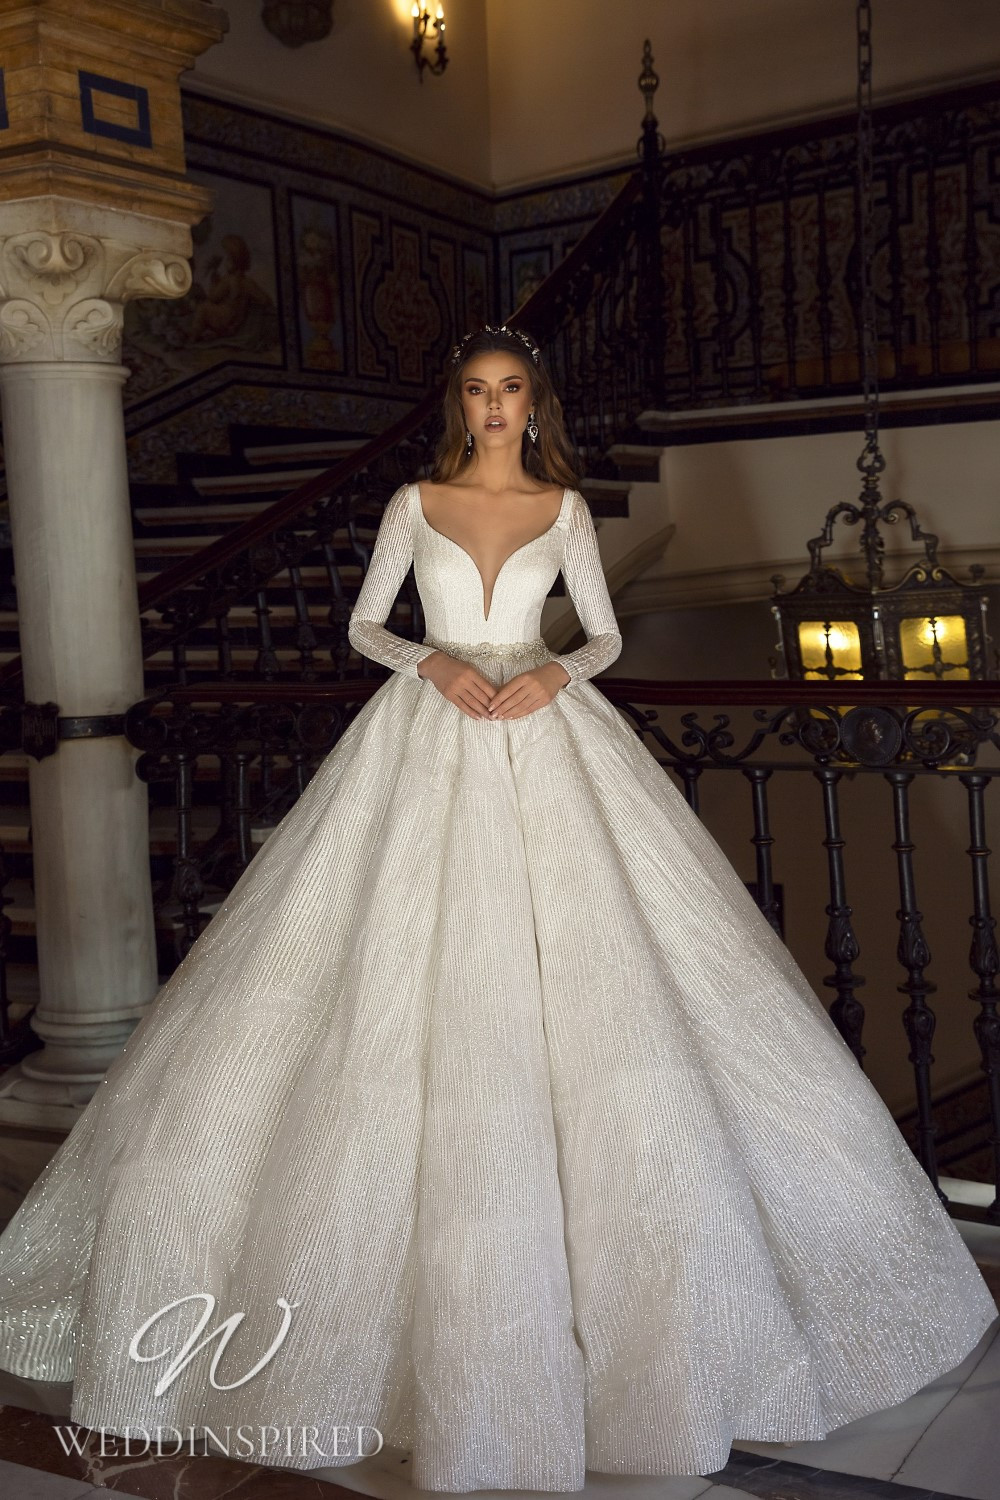 A Maks Mariano sparkly princess wedding dress with long sleeves